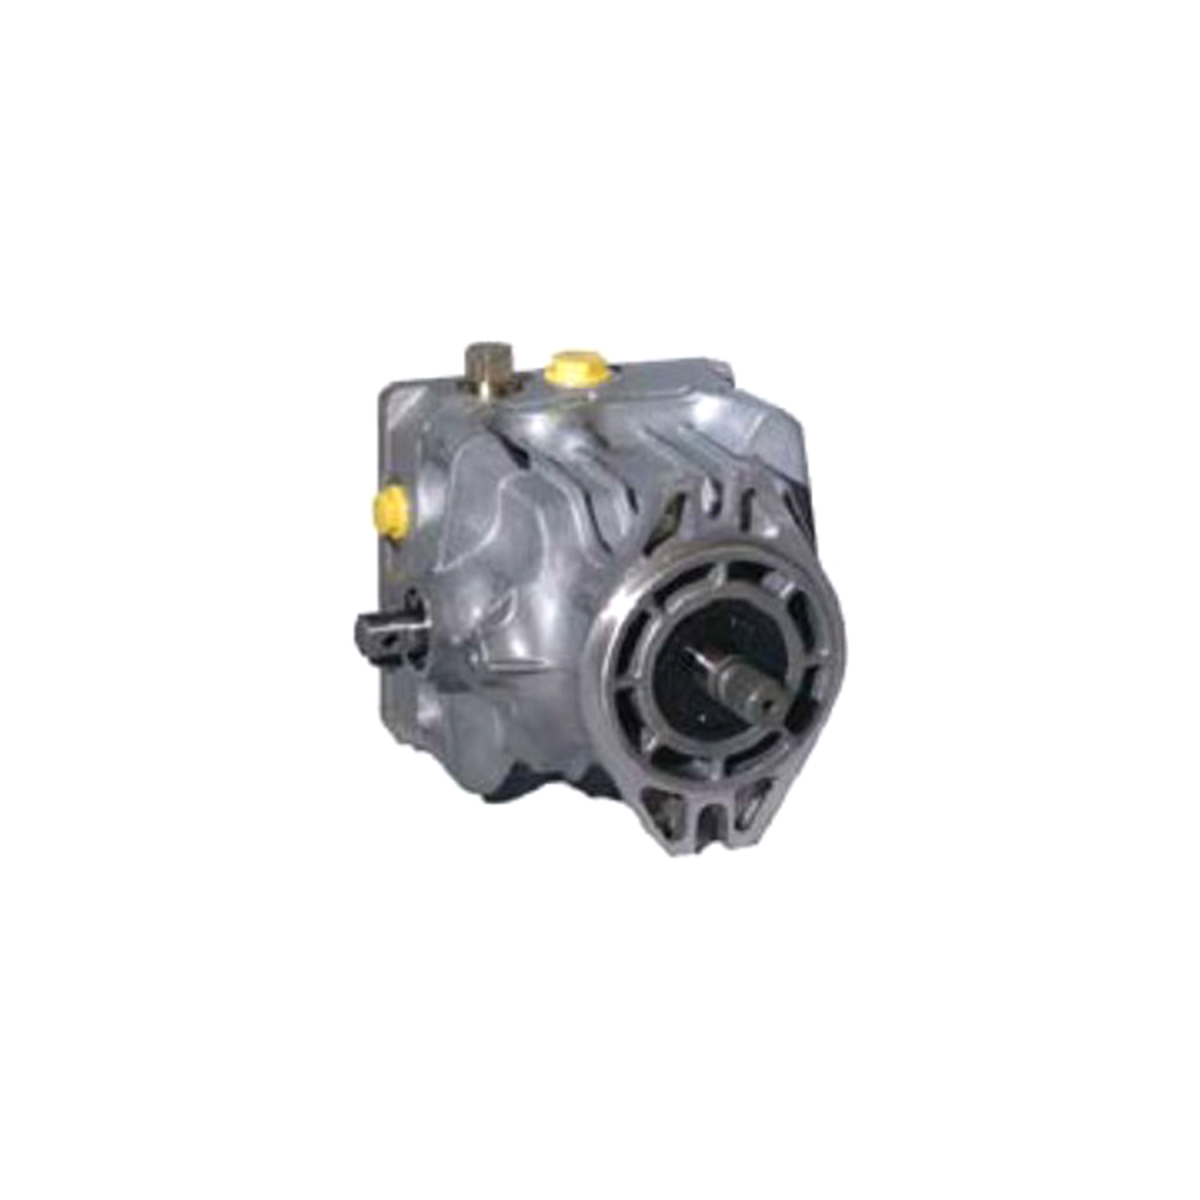 200013 Dixie Chopper L 16 Series Hydro-Gear Pump